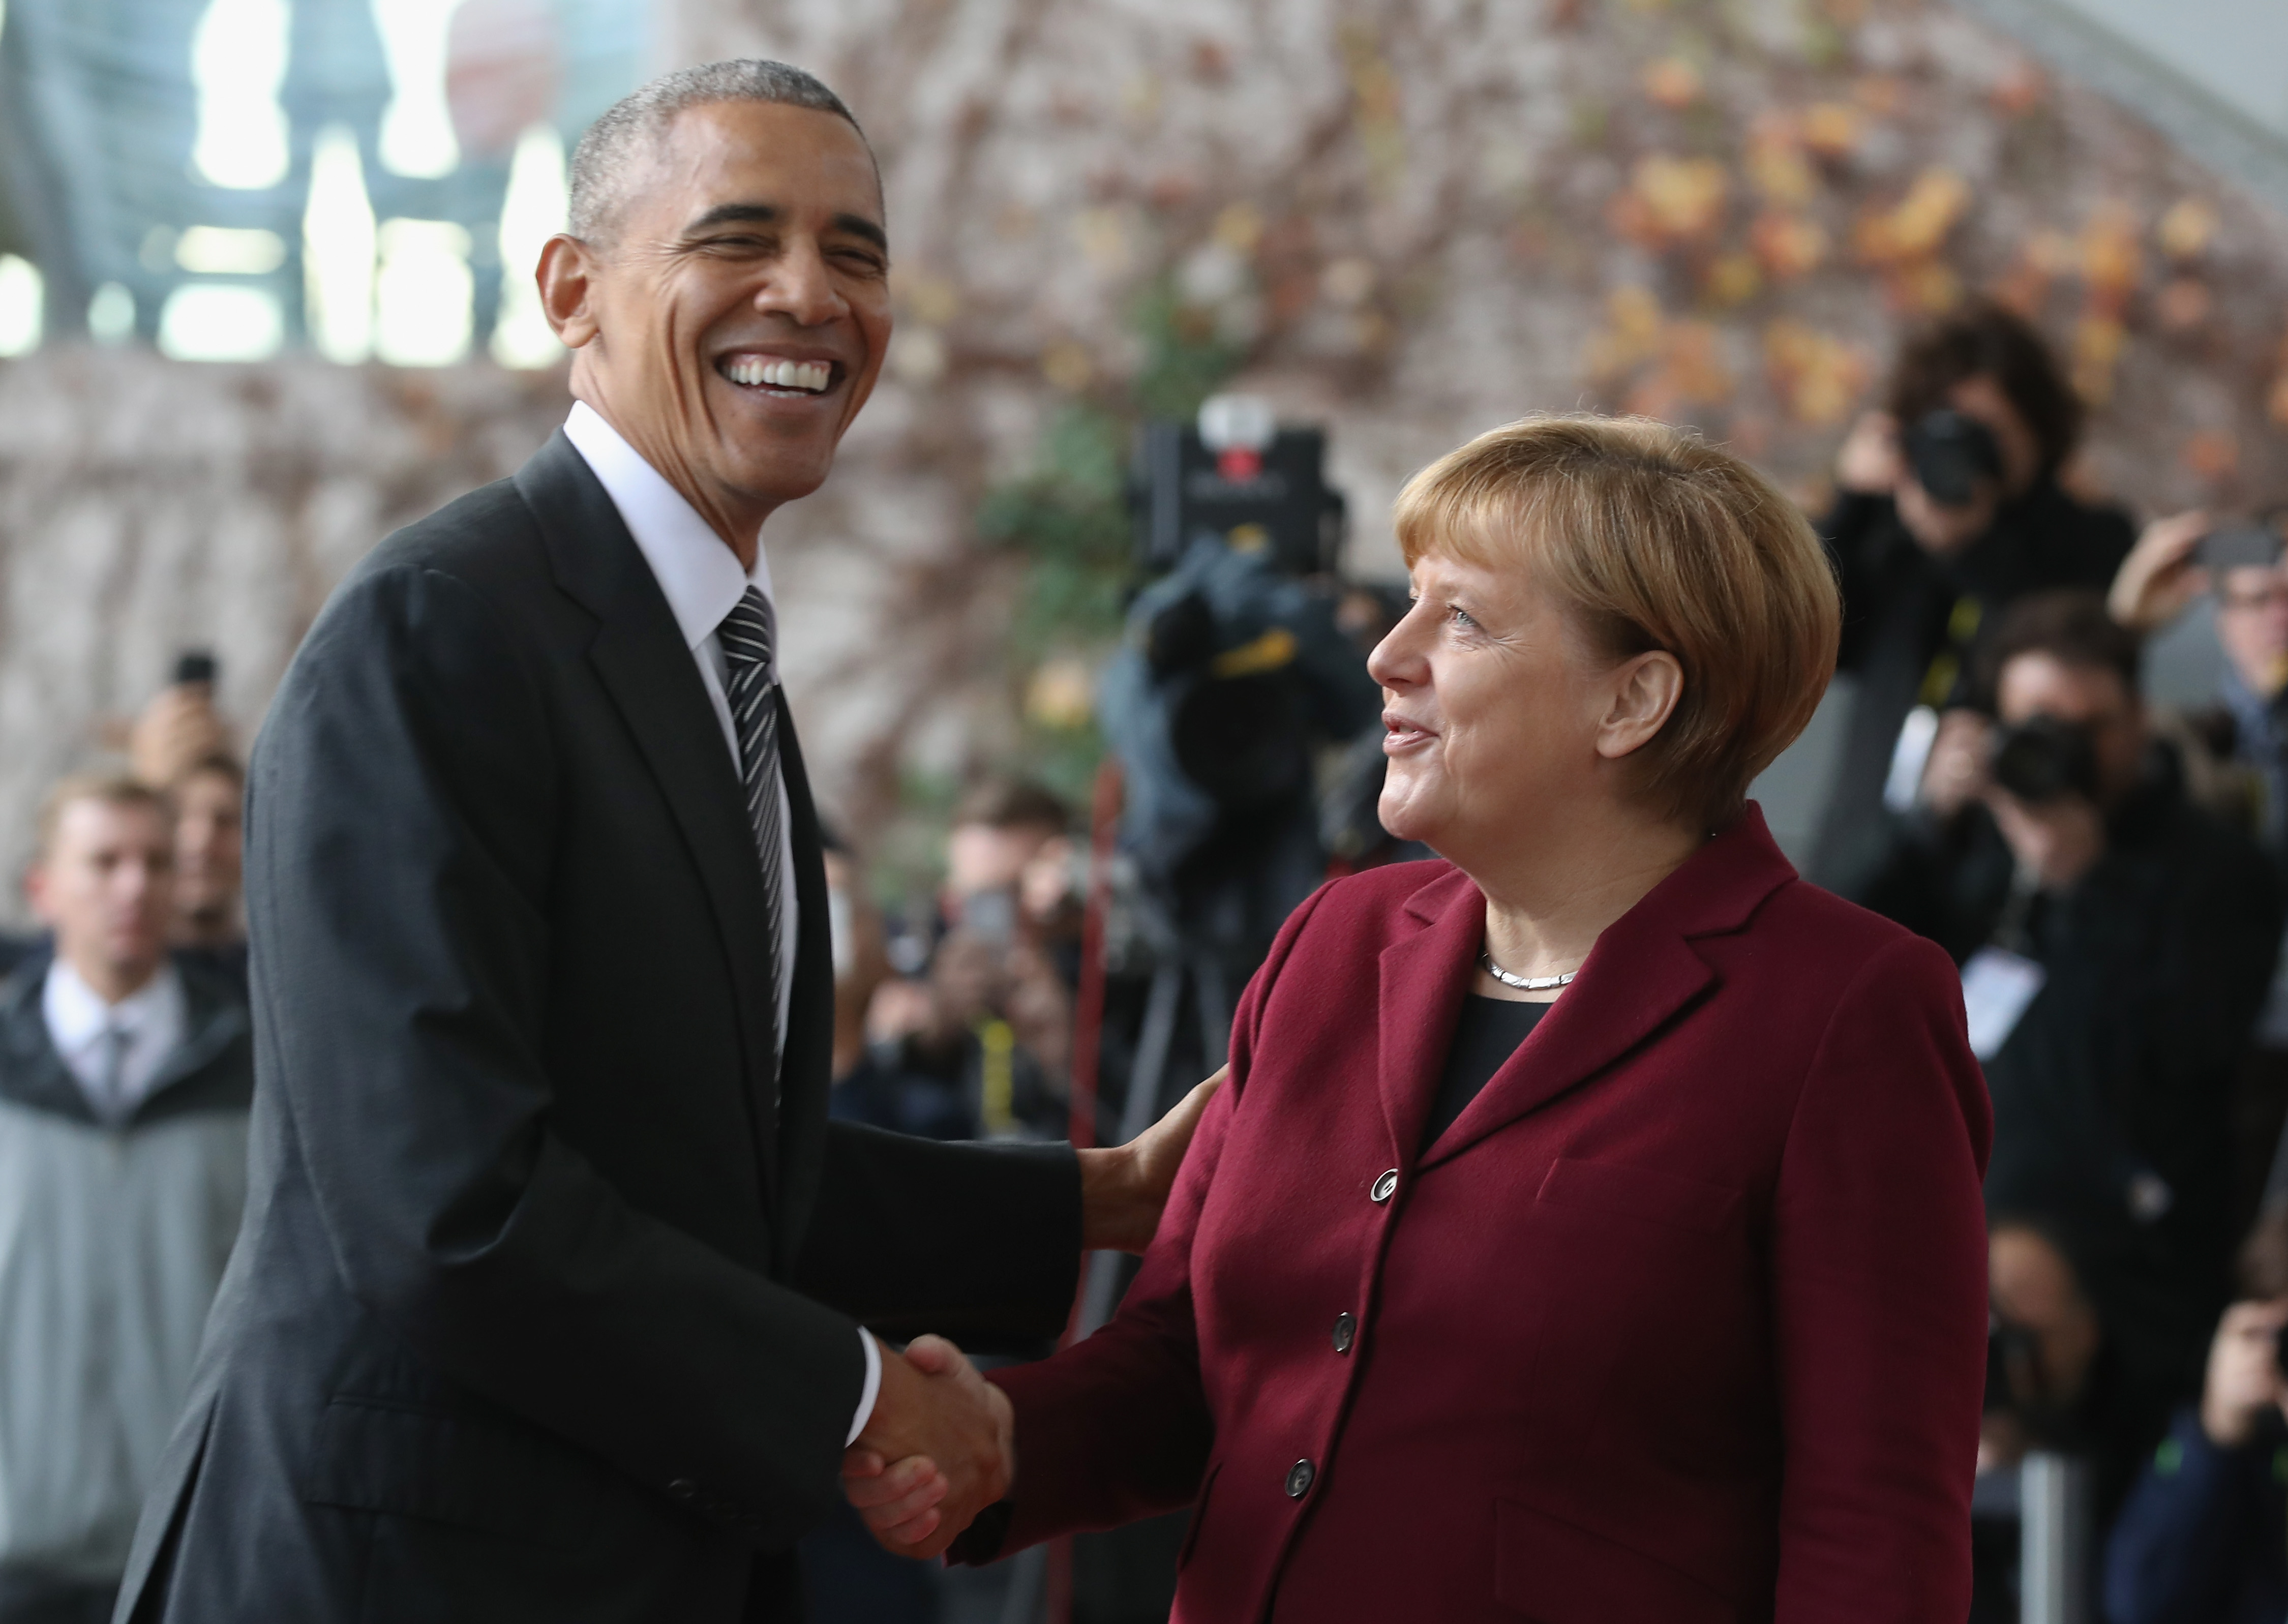 German Chancellor Angela Merkel greets U.S. President Barack Obama upon his arrival for talks with European leaders at the Chancellery on November 18, 2016 in Berlin, Germany.